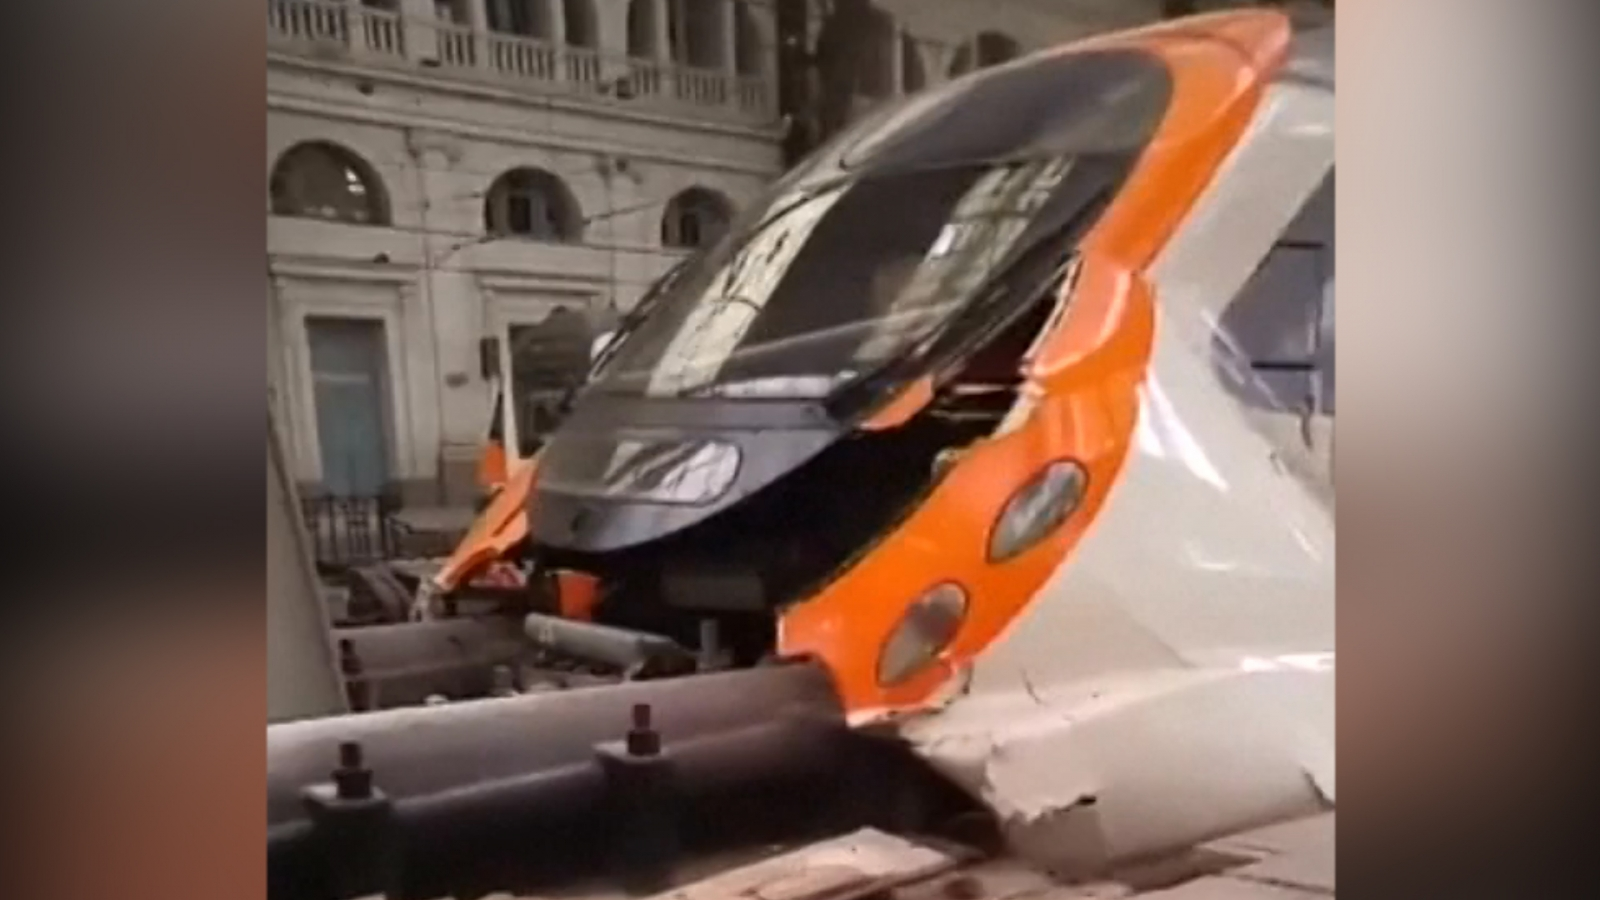 commuter-train-crash-in-barcelona-station-injures-48